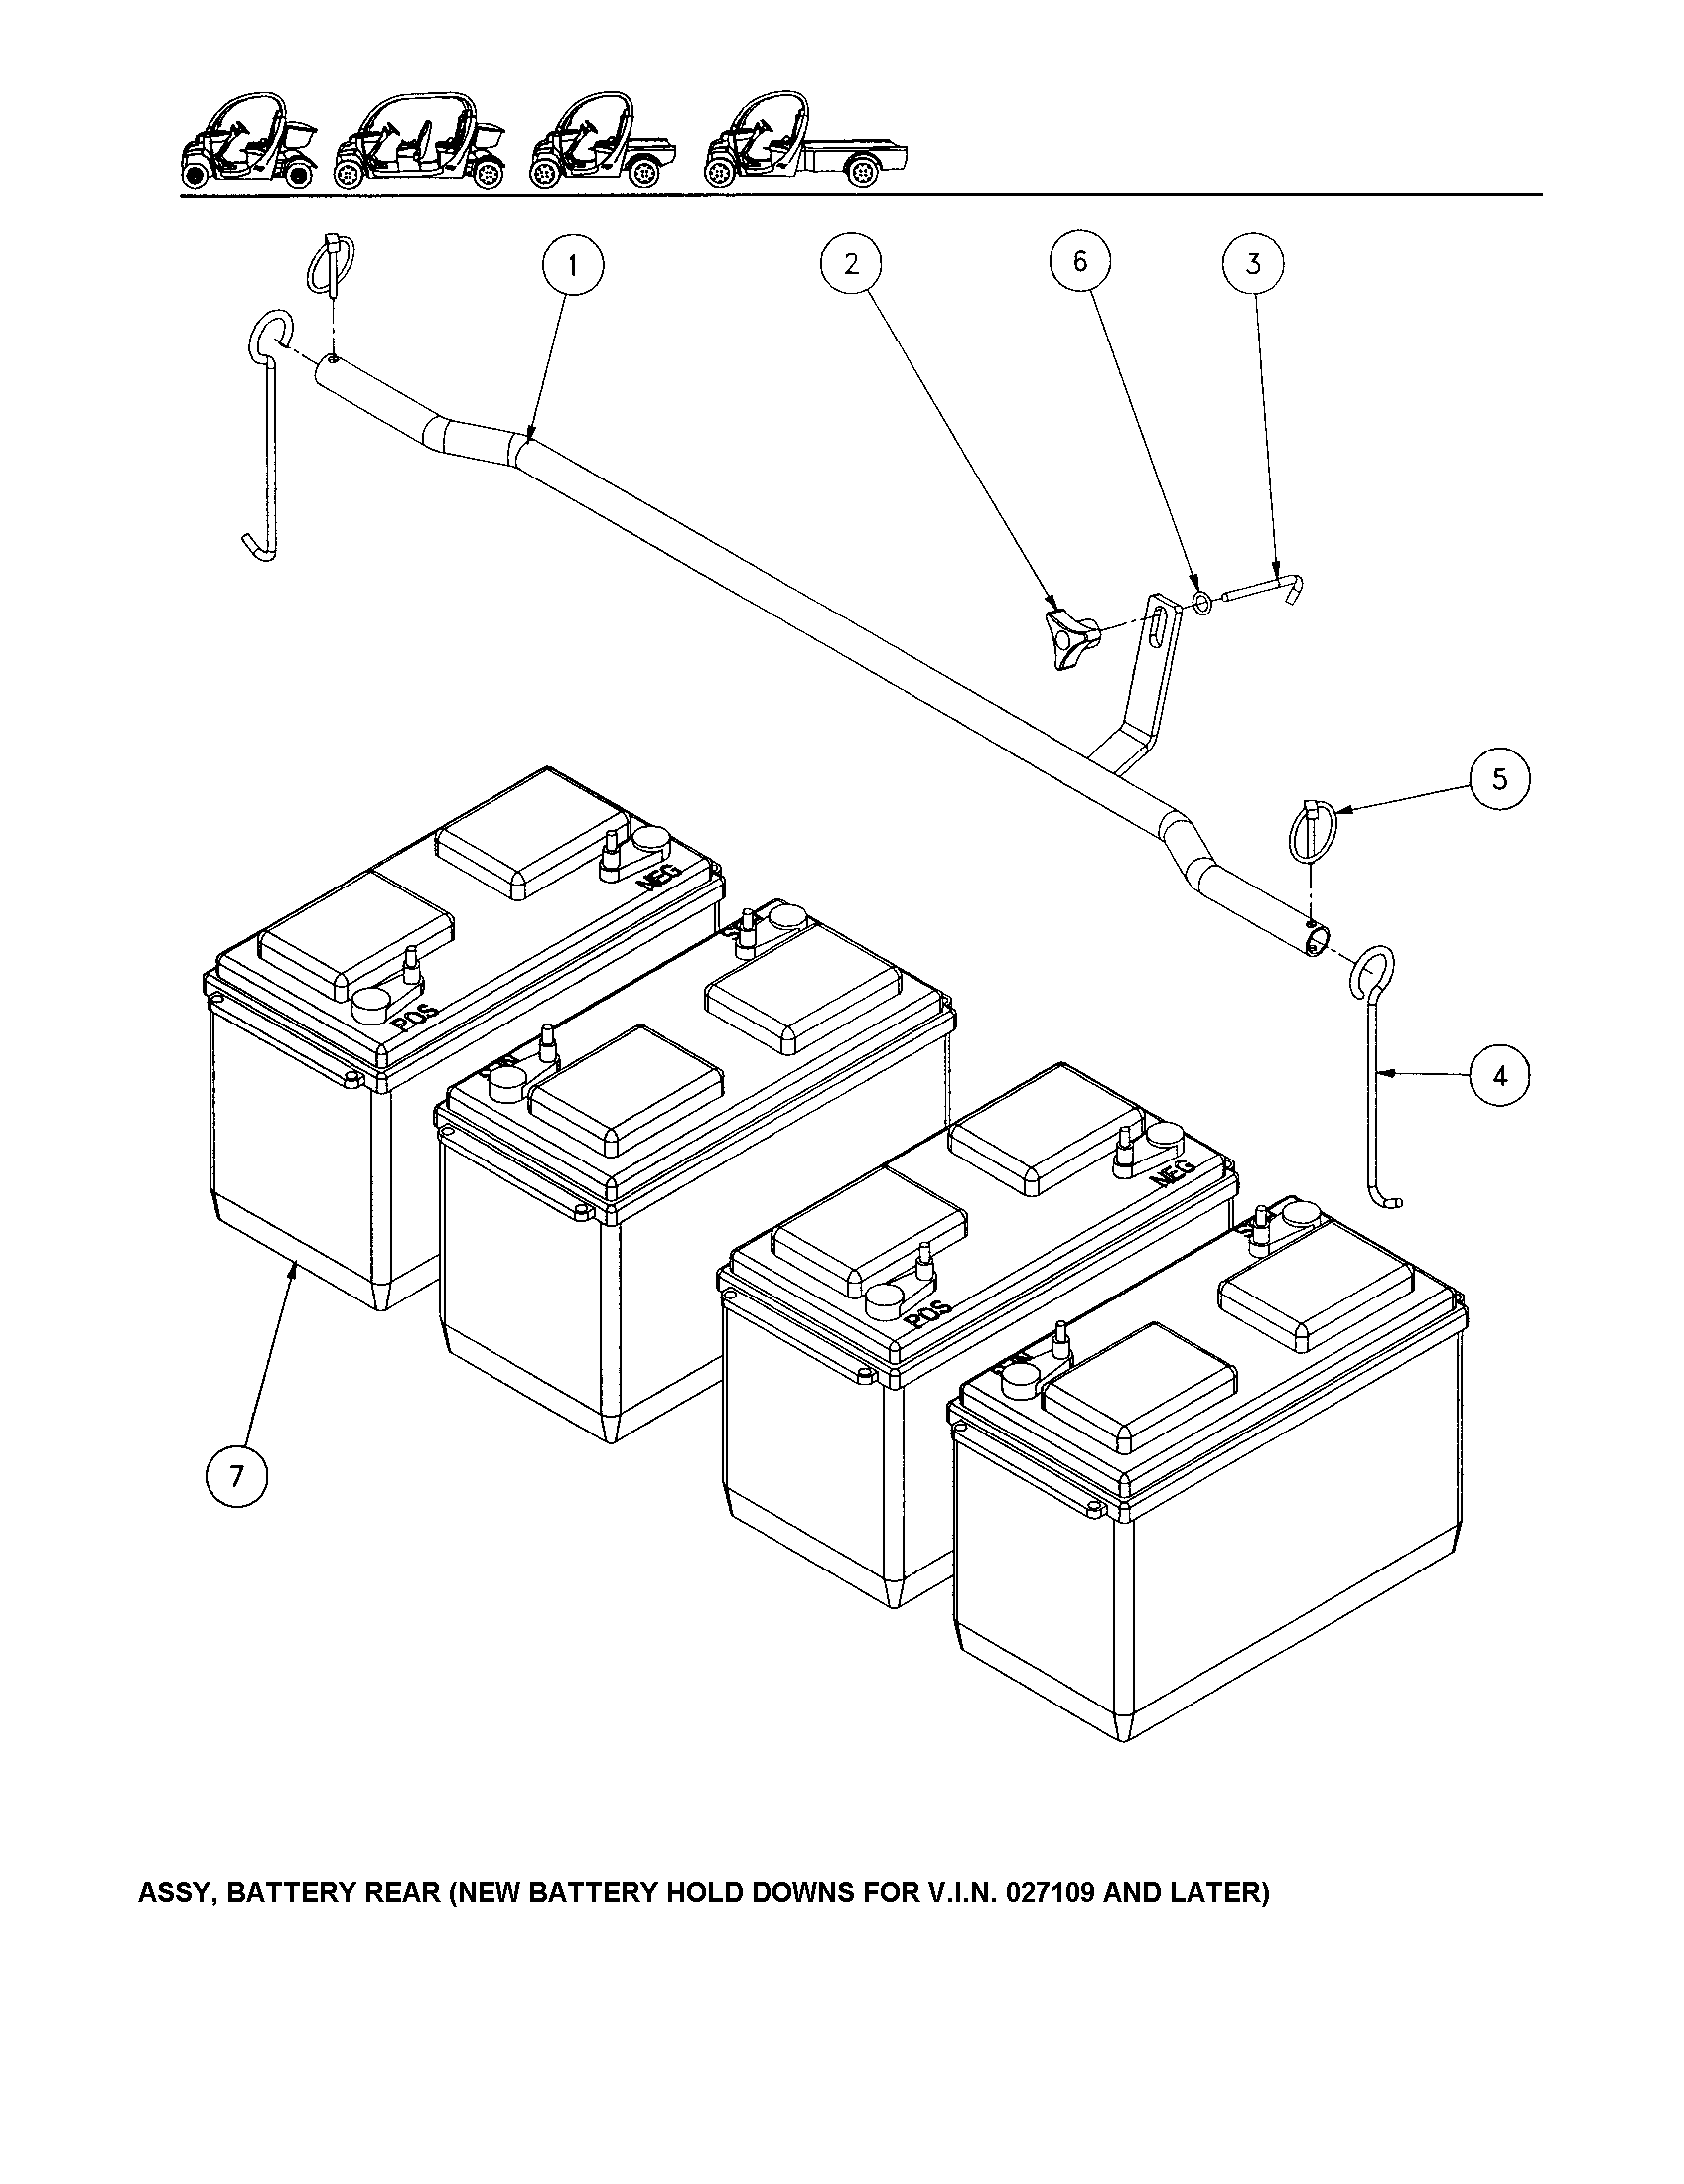 BATTERY, REAR Diagram & Parts List for Model geme825 Gem